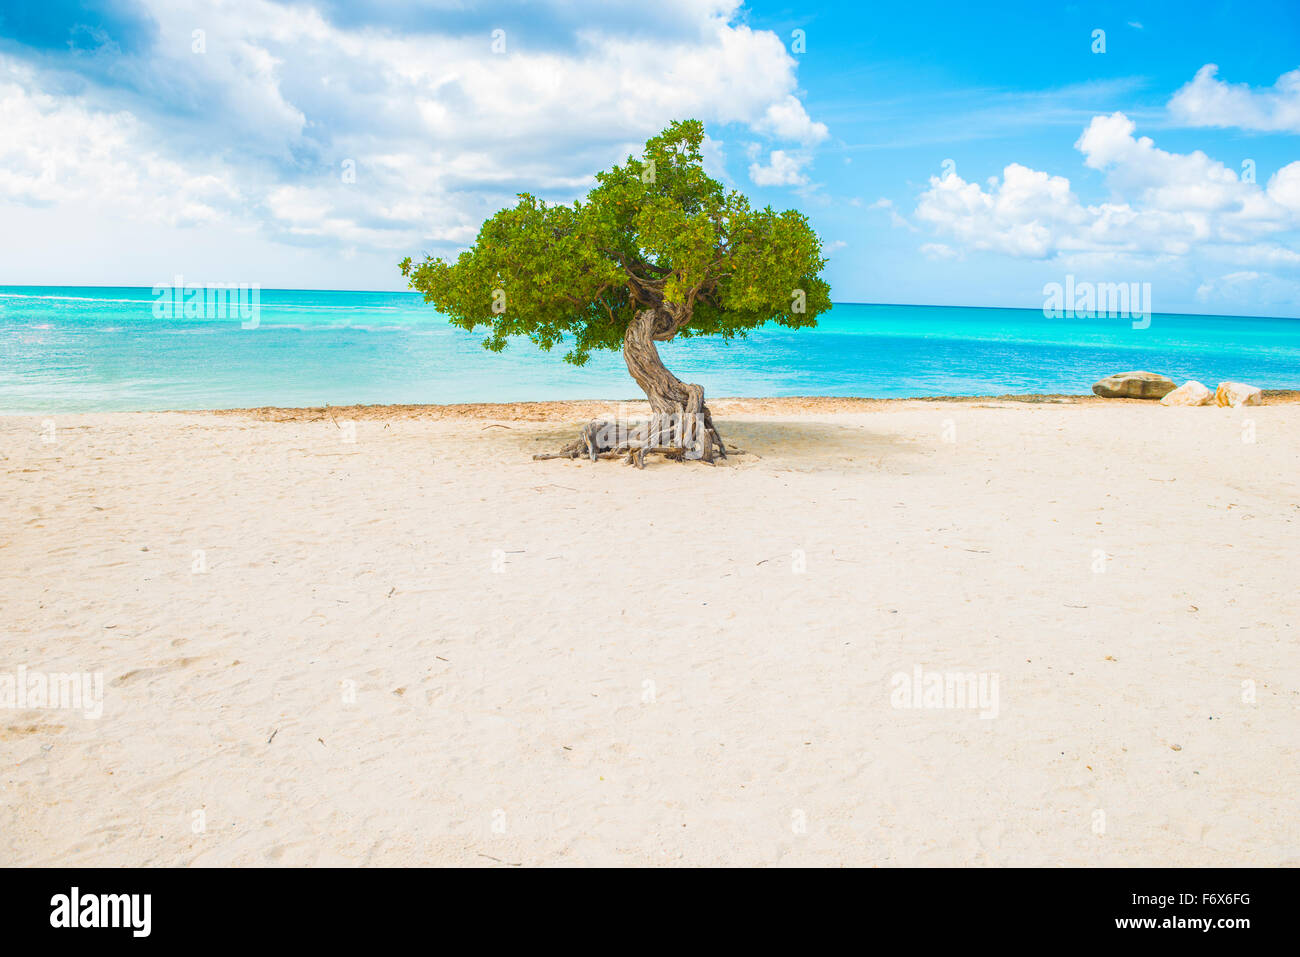 Divi Divi tree à Eagle Beach, Aruba, vent-scuplted arbre indigène, mer des Caraïbes Photo Stock